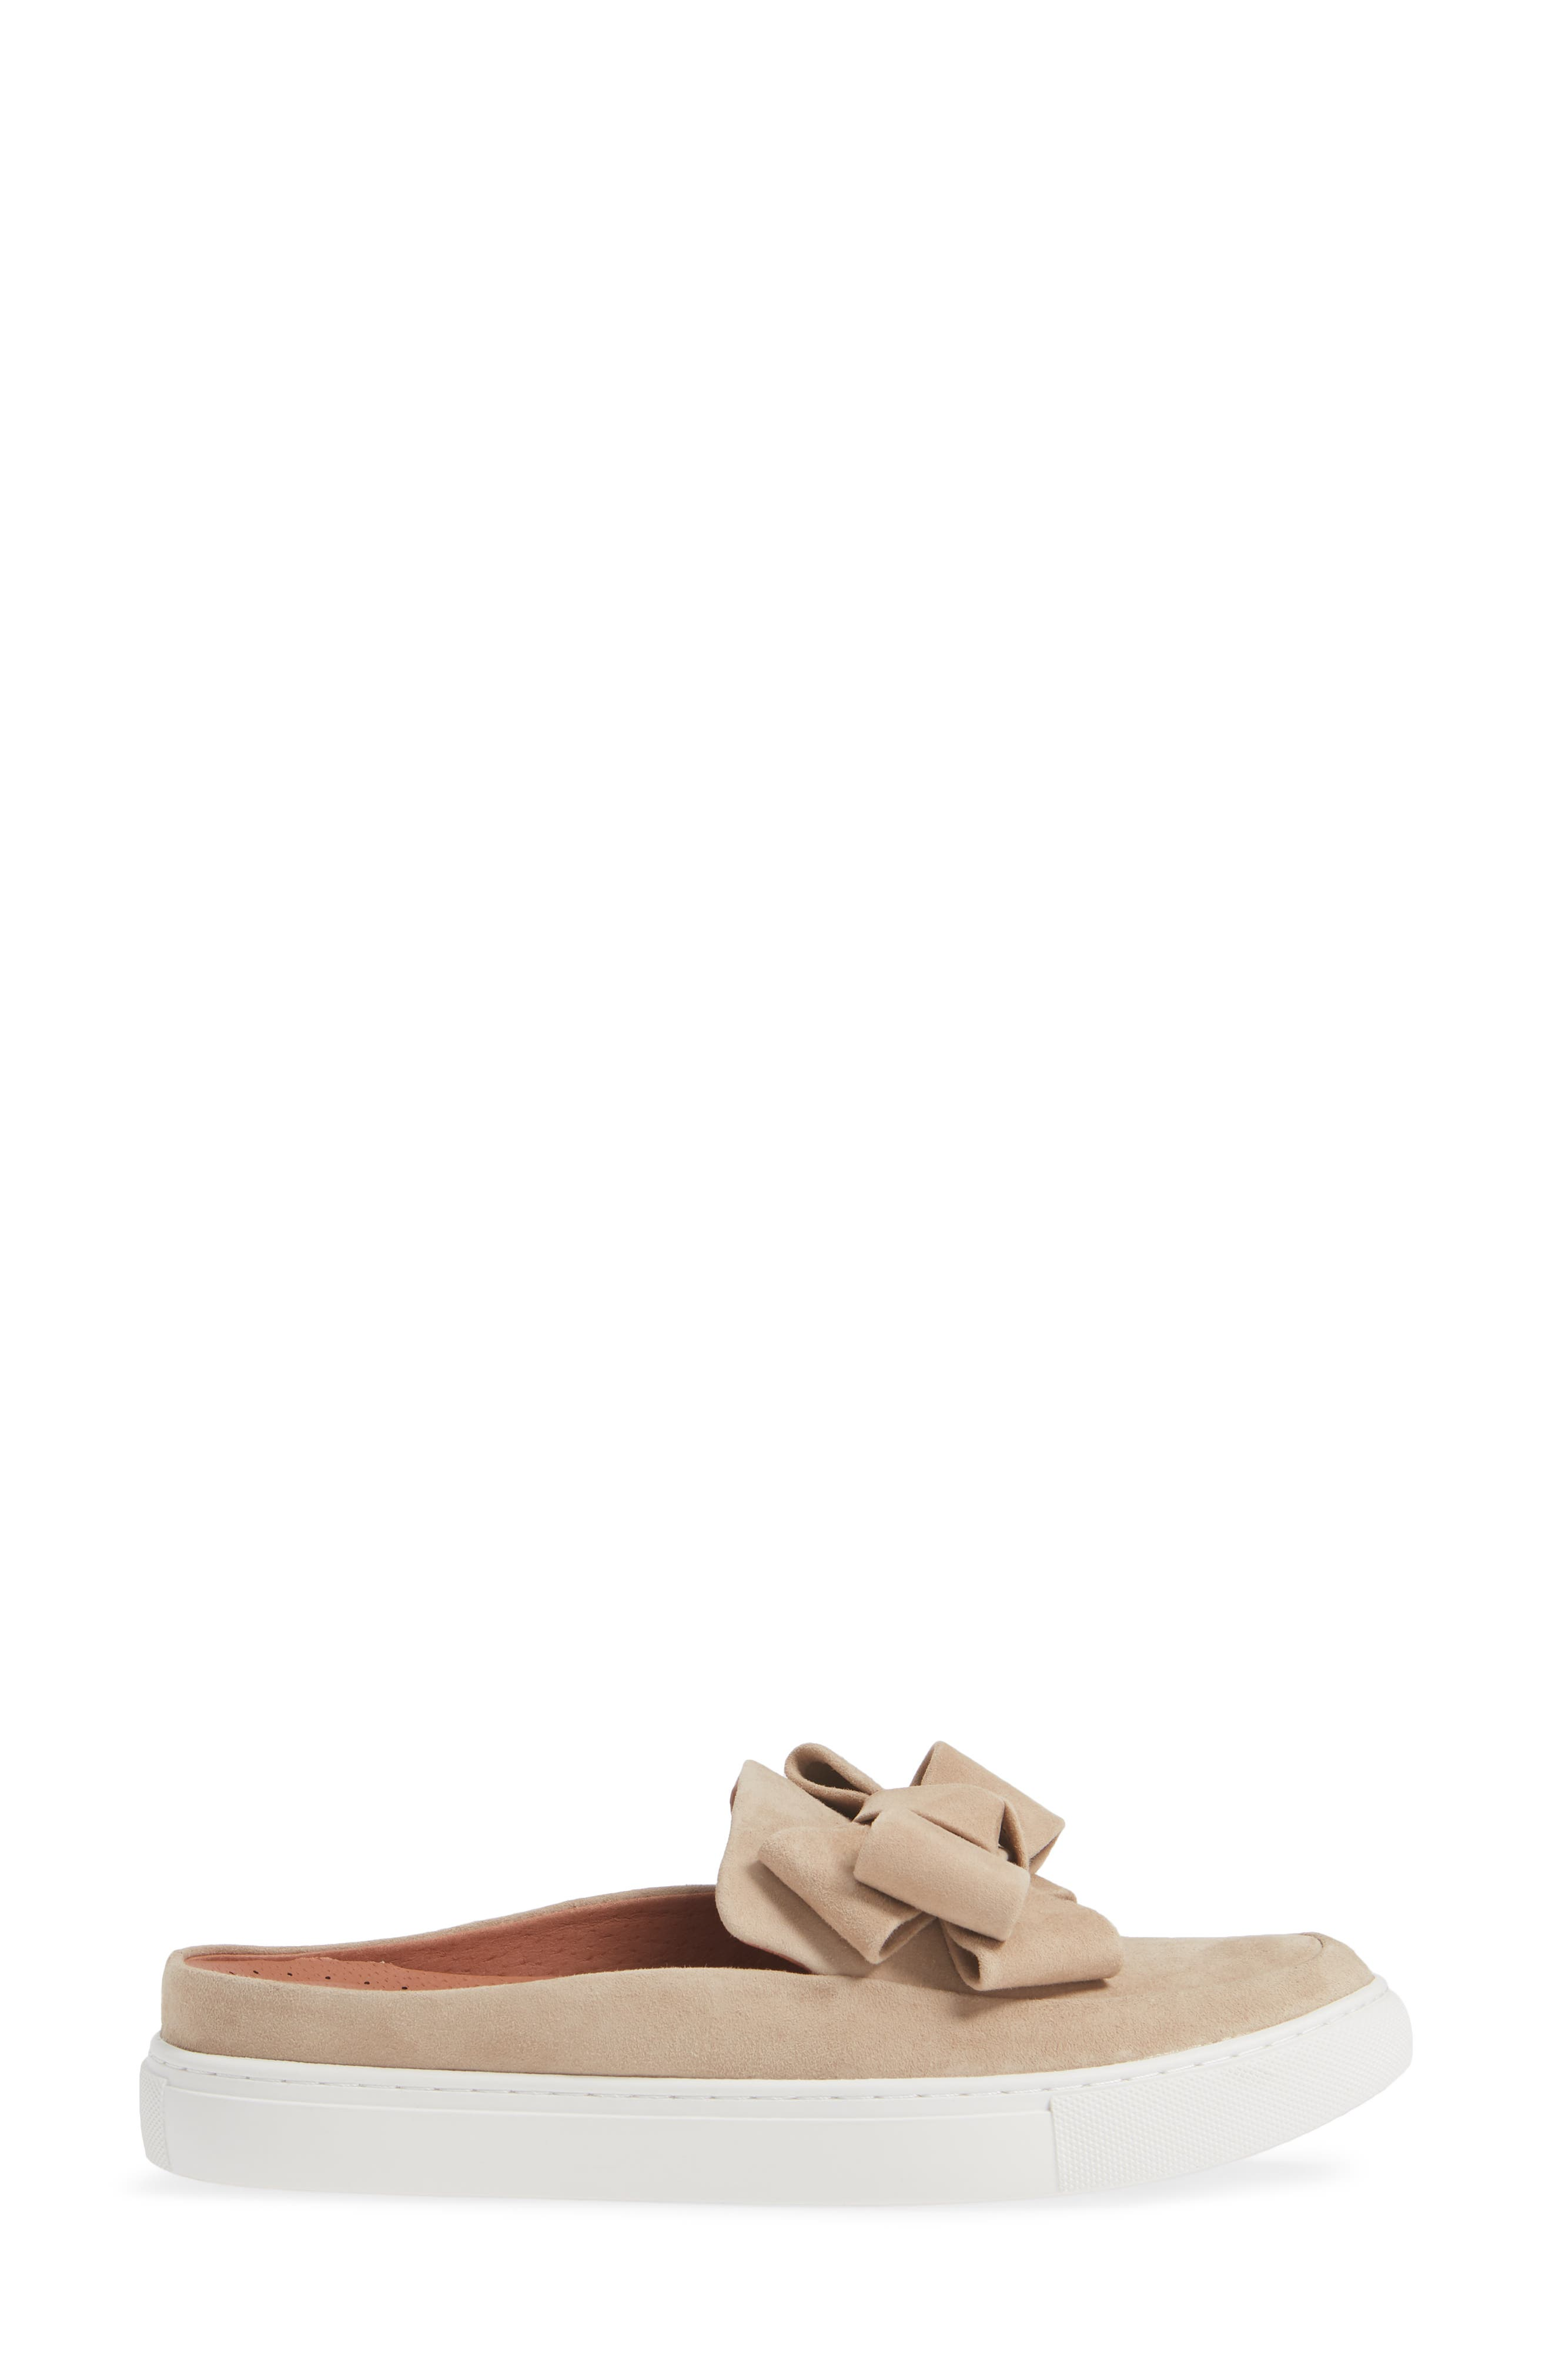 GENTLE SOULS BY KENNETH COLE, Rory Bow Mule, Alternate thumbnail 3, color, 233